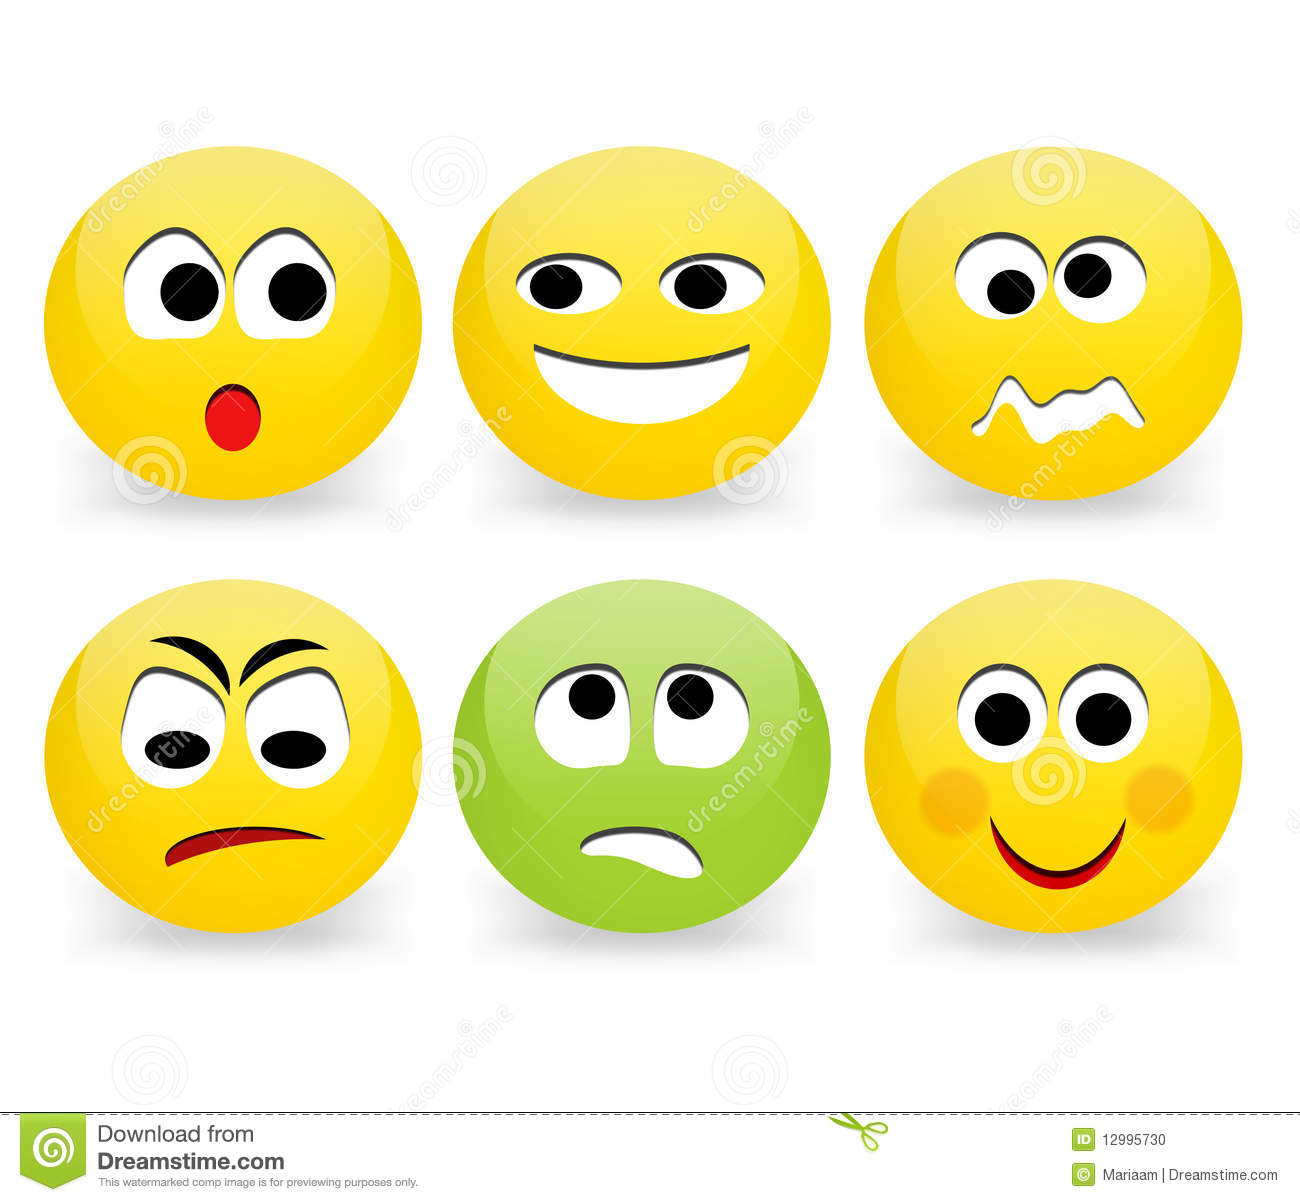 Feelings clipart Clipart Free Panda Feelings Clipart